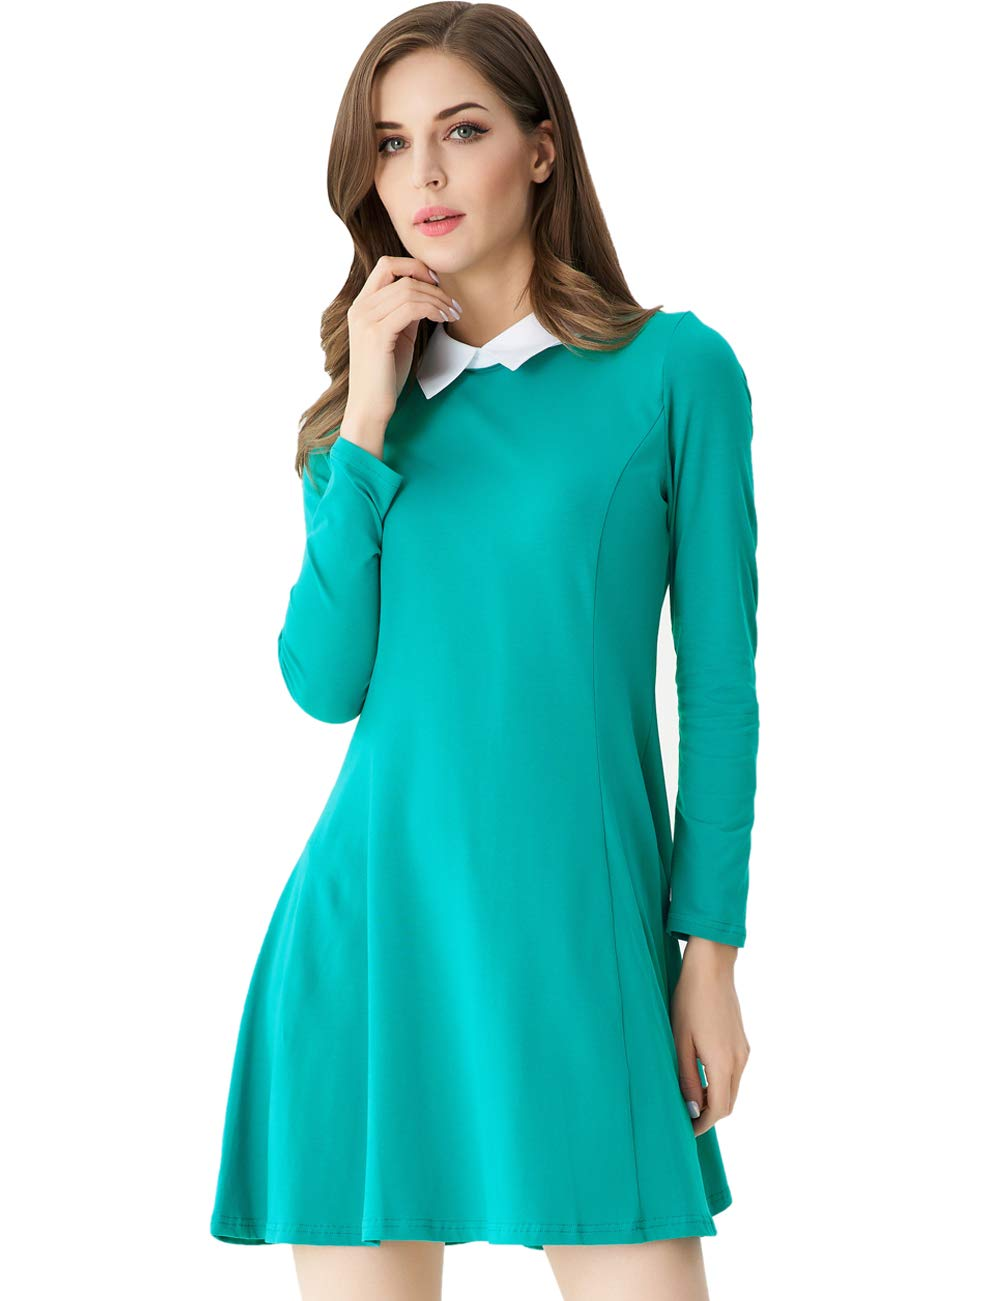 Aphratti Women's Long Sleeve Casual Peter Pan Collar Flare Dress Peacock-Green Small by Aphratti